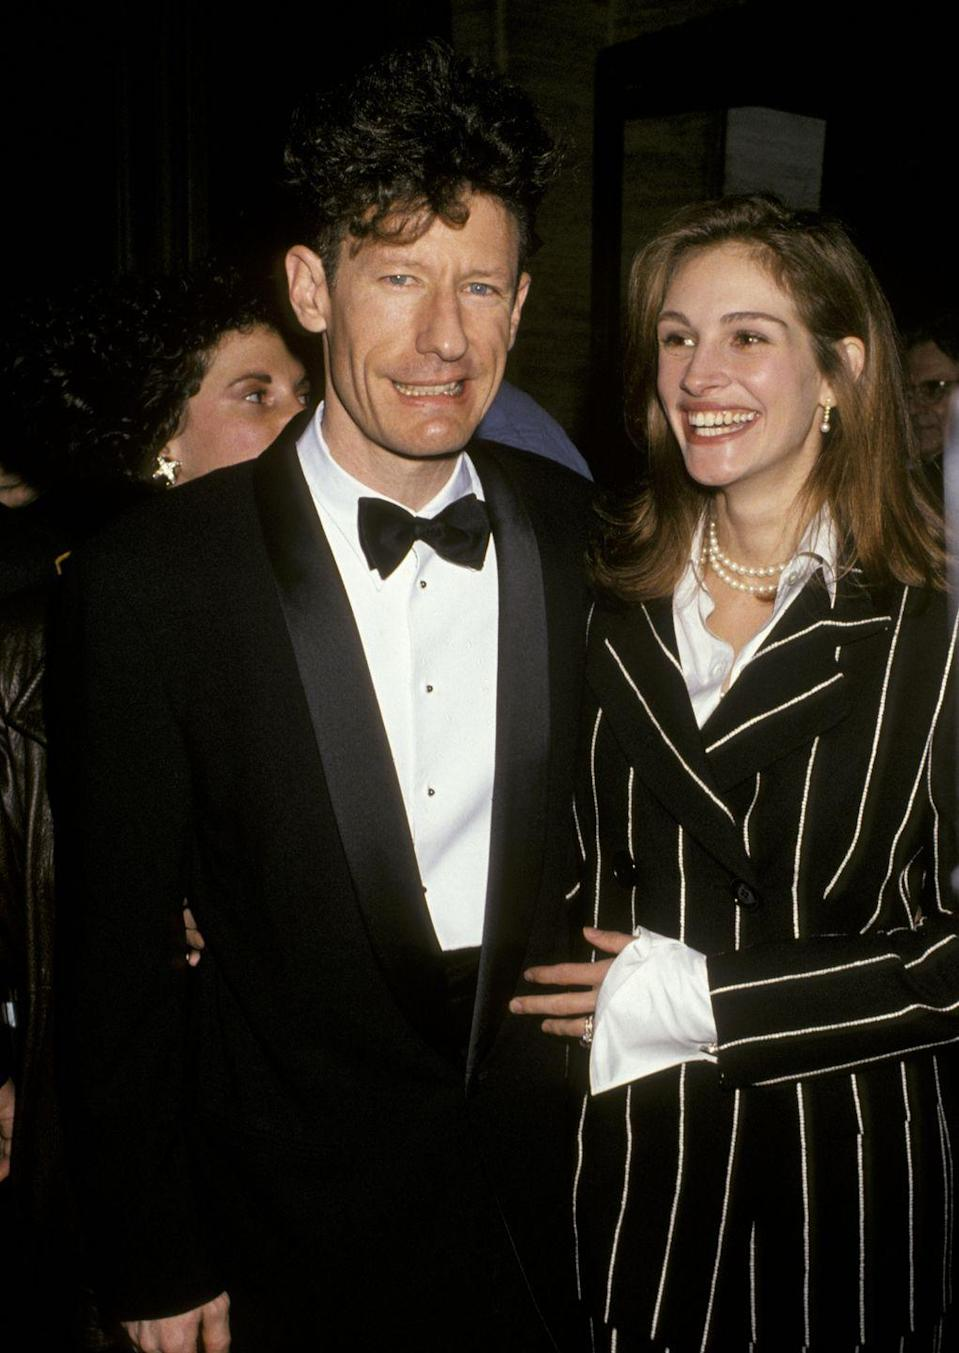 """<p>Back in 1993, Julia and country singer Lyle had a surprise wedding, with Lyle's manager telling the <a href=""""https://www.washingtonpost.com/archive/lifestyle/1993/06/28/julia-roberts-and-lyle-lovett-make-a-mad-dash-to-the-altar/c6a19041-93b8-4bce-9929-4bdb86d8faa9/?utm_term=.05397a52e541"""" rel=""""nofollow noopener"""" target=""""_blank"""" data-ylk=""""slk:Washington Post"""" class=""""link rapid-noclick-resp""""><em>Washington Post</em></a> at the time that """"it happened rapidly, very rapidly."""" """"I feel liberated in a way,"""" Julia reportedly <a href=""""http://people.com/archive/cover-story-one-last-sad-song-vol-43-no-14/"""" rel=""""nofollow noopener"""" target=""""_blank"""" data-ylk=""""slk:told Premiere magazine"""" class=""""link rapid-noclick-resp"""">told <em>Premiere</em> magazine</a> while married. """"I feel like this really pleasant calm has descended upon my life."""" The calm didn't last—the couple split after 21 months together.</p>"""